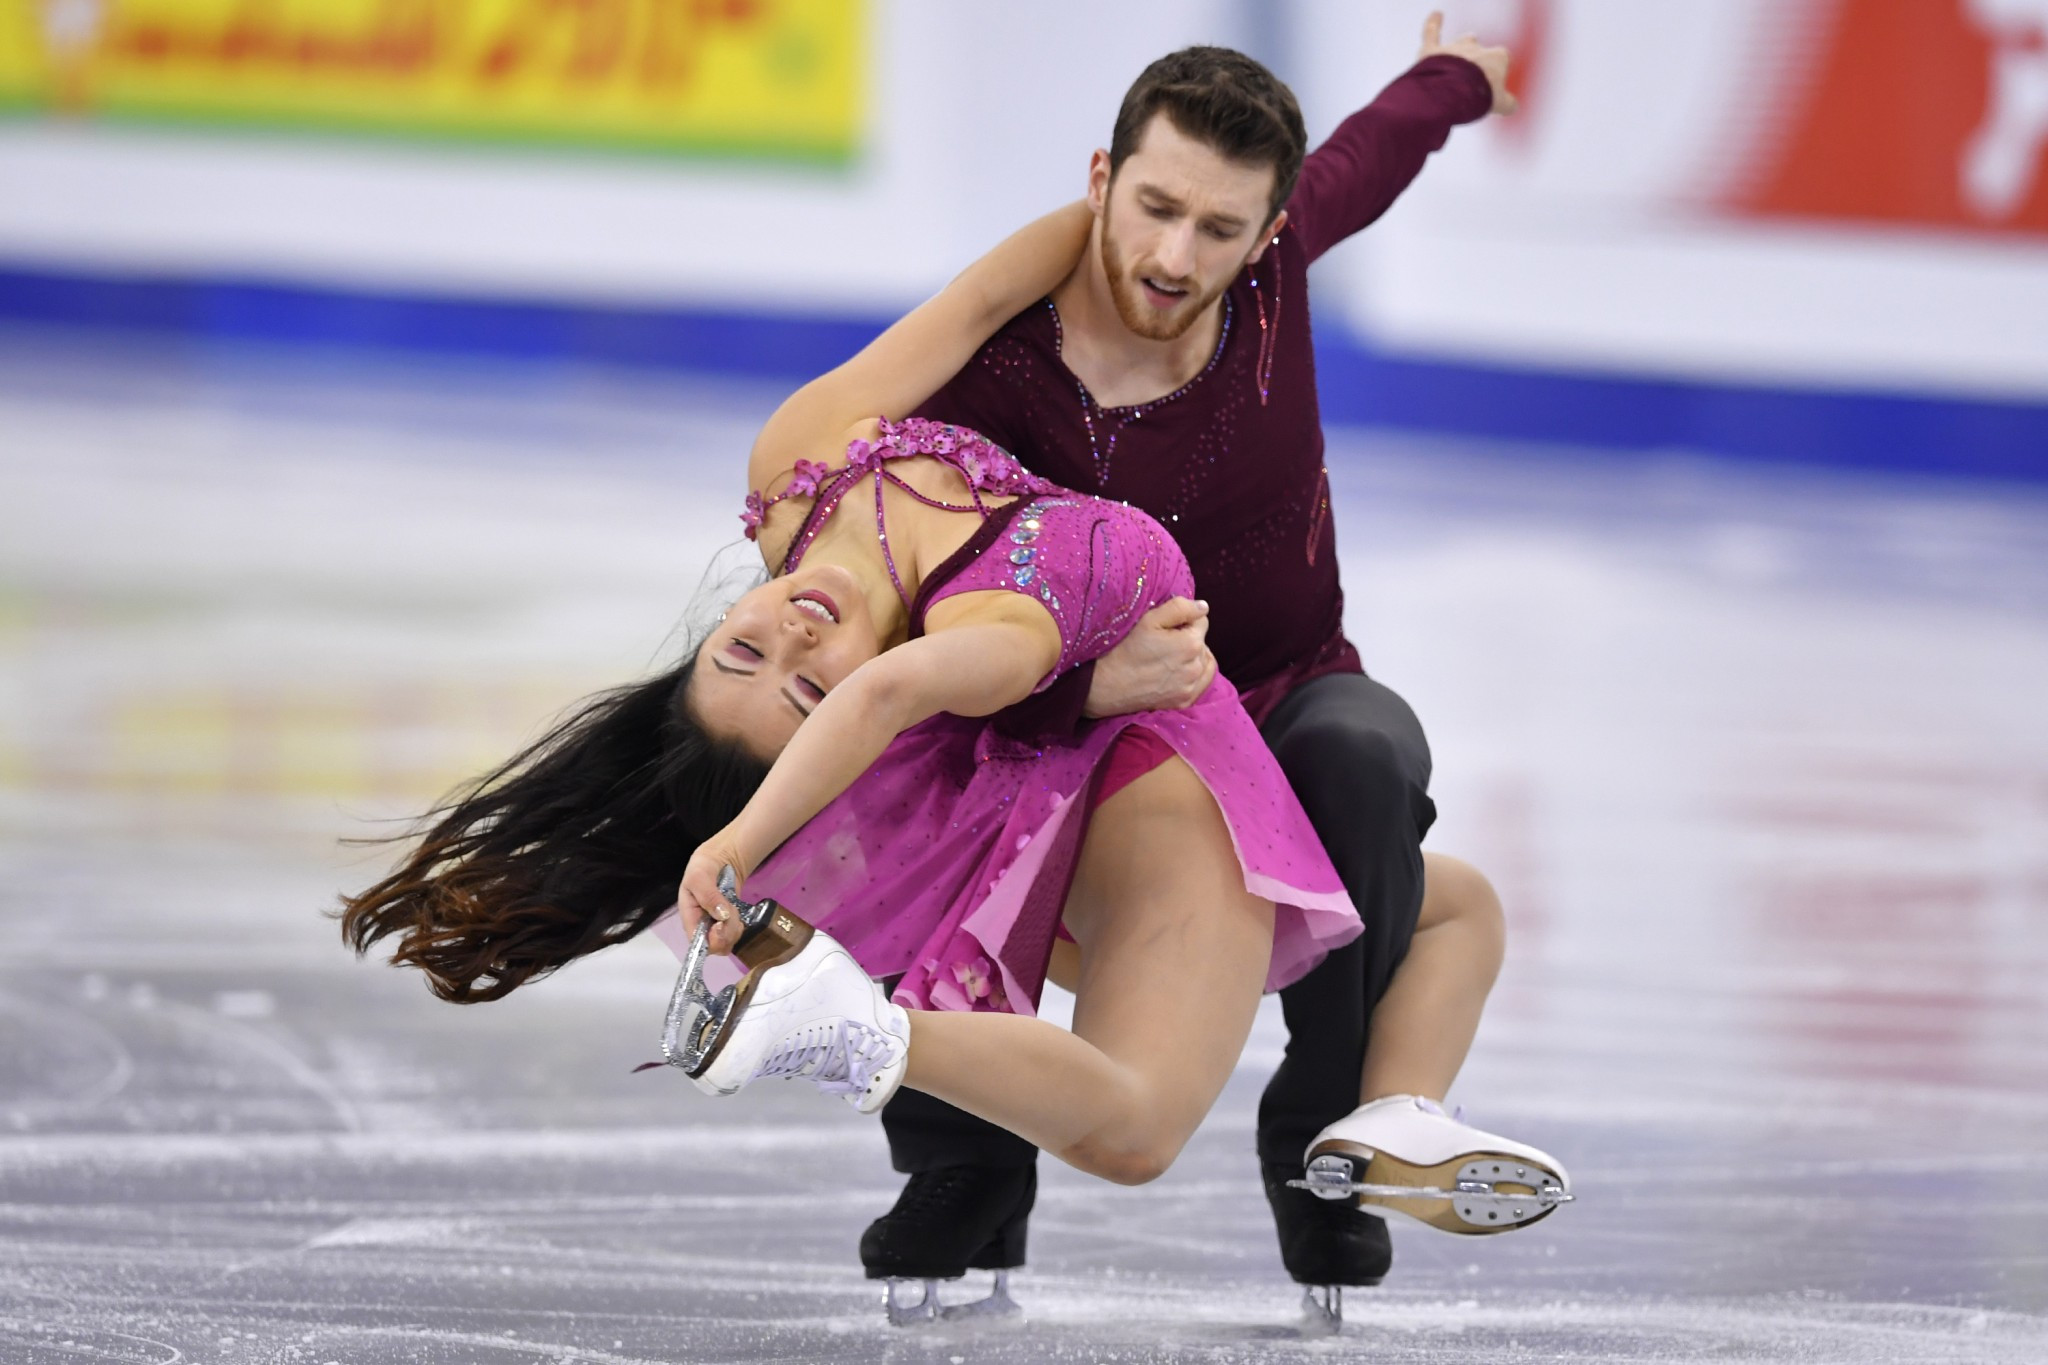 American ice skater latest foreign athlete to be given South Korean passport for Pyeongchang 2018